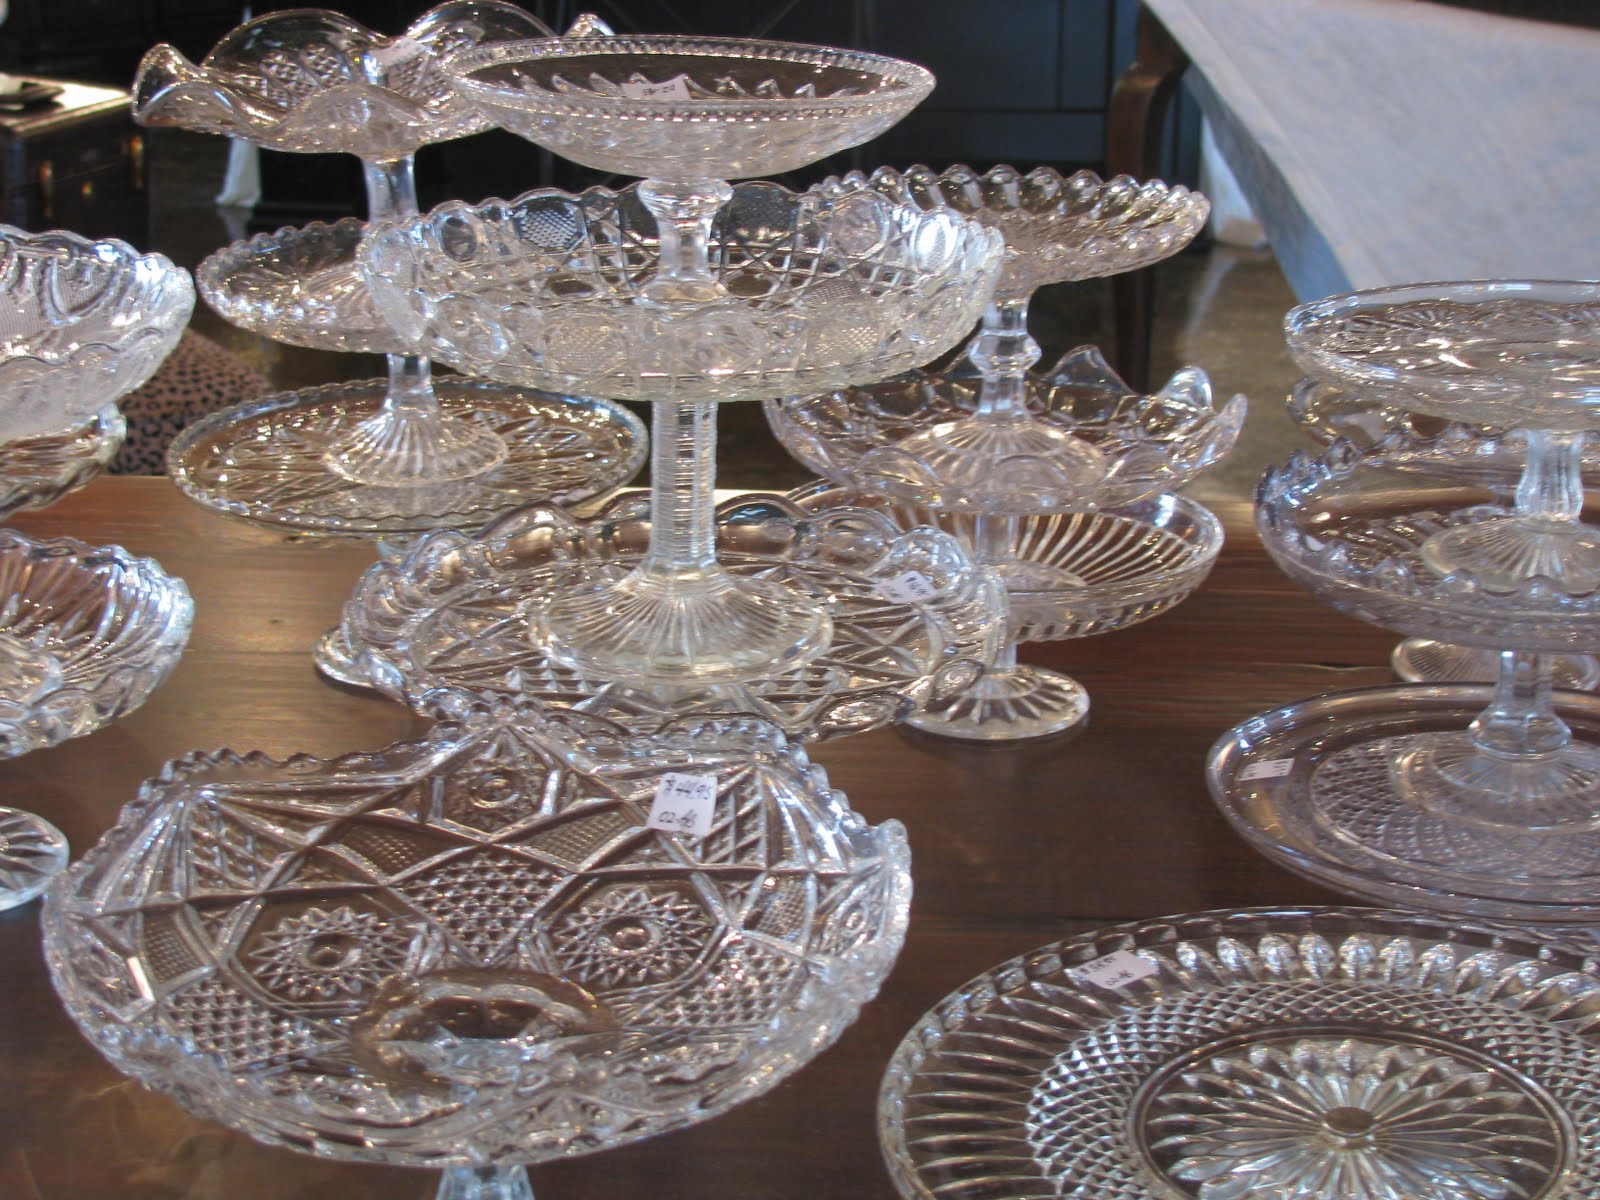 An Assortment of Authentic French Cake Plates